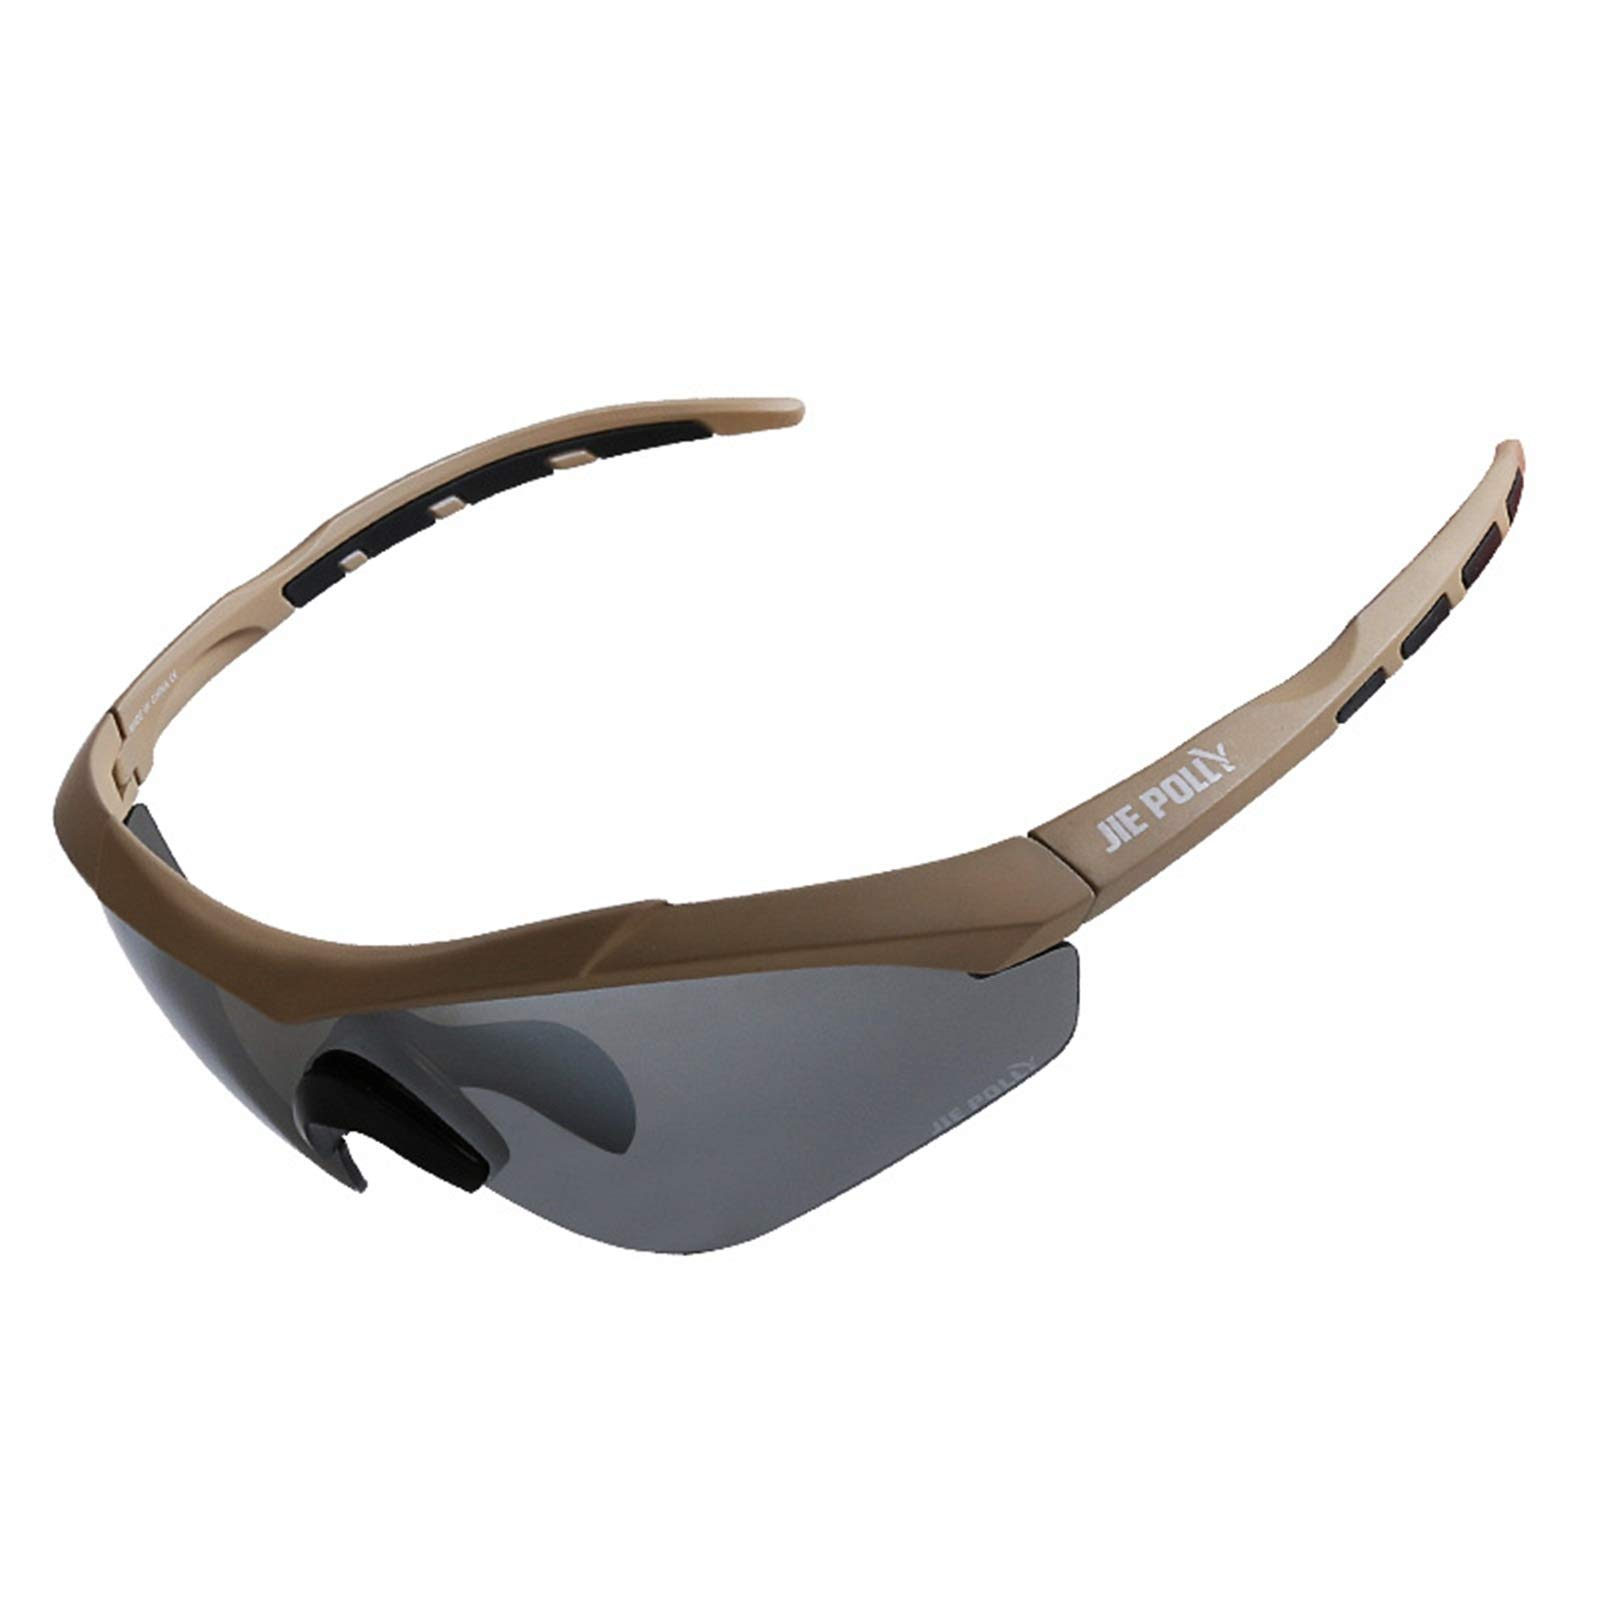 Adisaer Winter Cycling Glasses Tactical Goggles Windshield Anti-Shock Bulletproof Glasses Brown for Adults